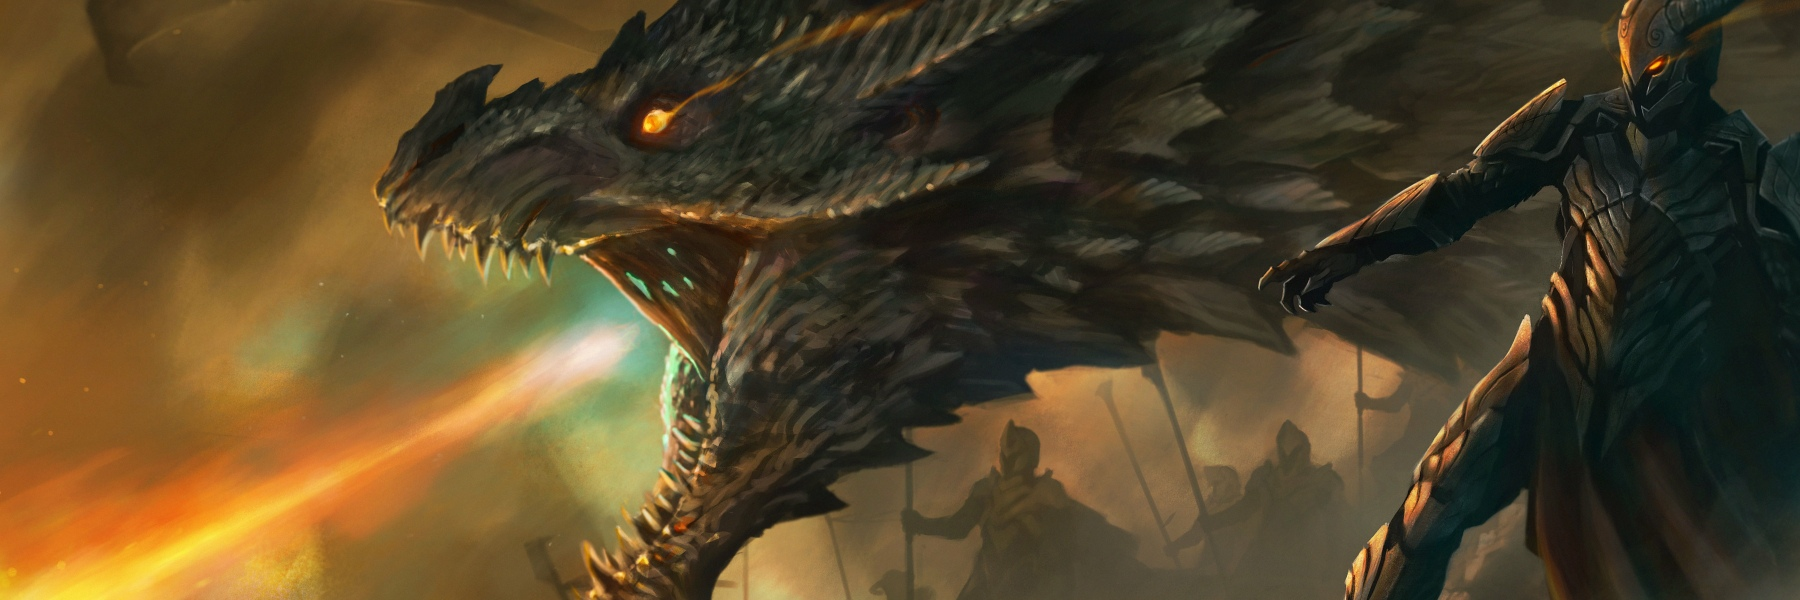 Dragons – Their Symbolism and Meaning in Popular Culture